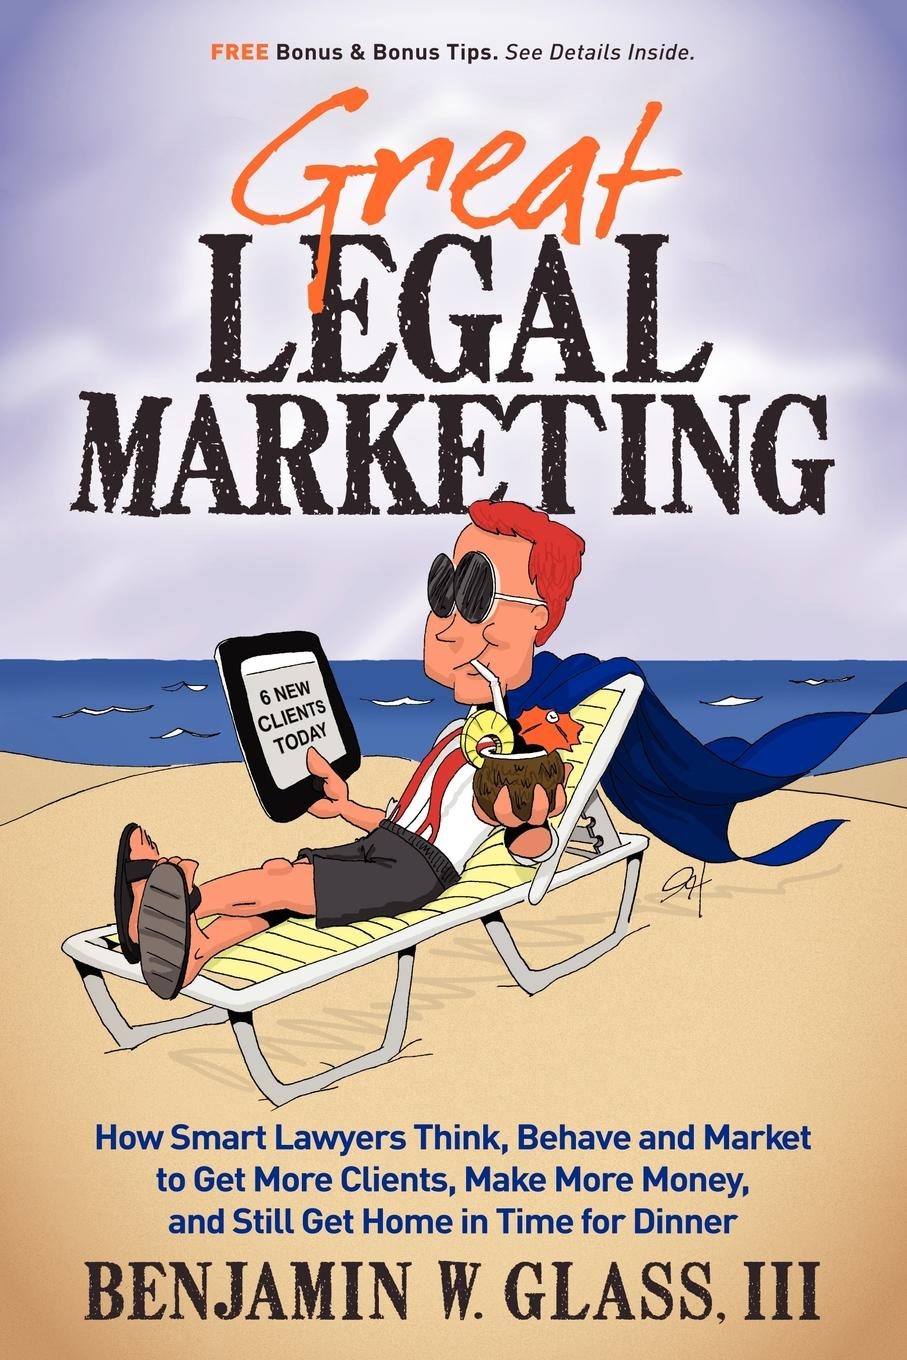 Great Legal Marketing: How Smart Lawyers Think, Behave and Market to Get More Clients, Make More Money, and Still Get Home in Time for Dinner By: Benjamin W Glass III